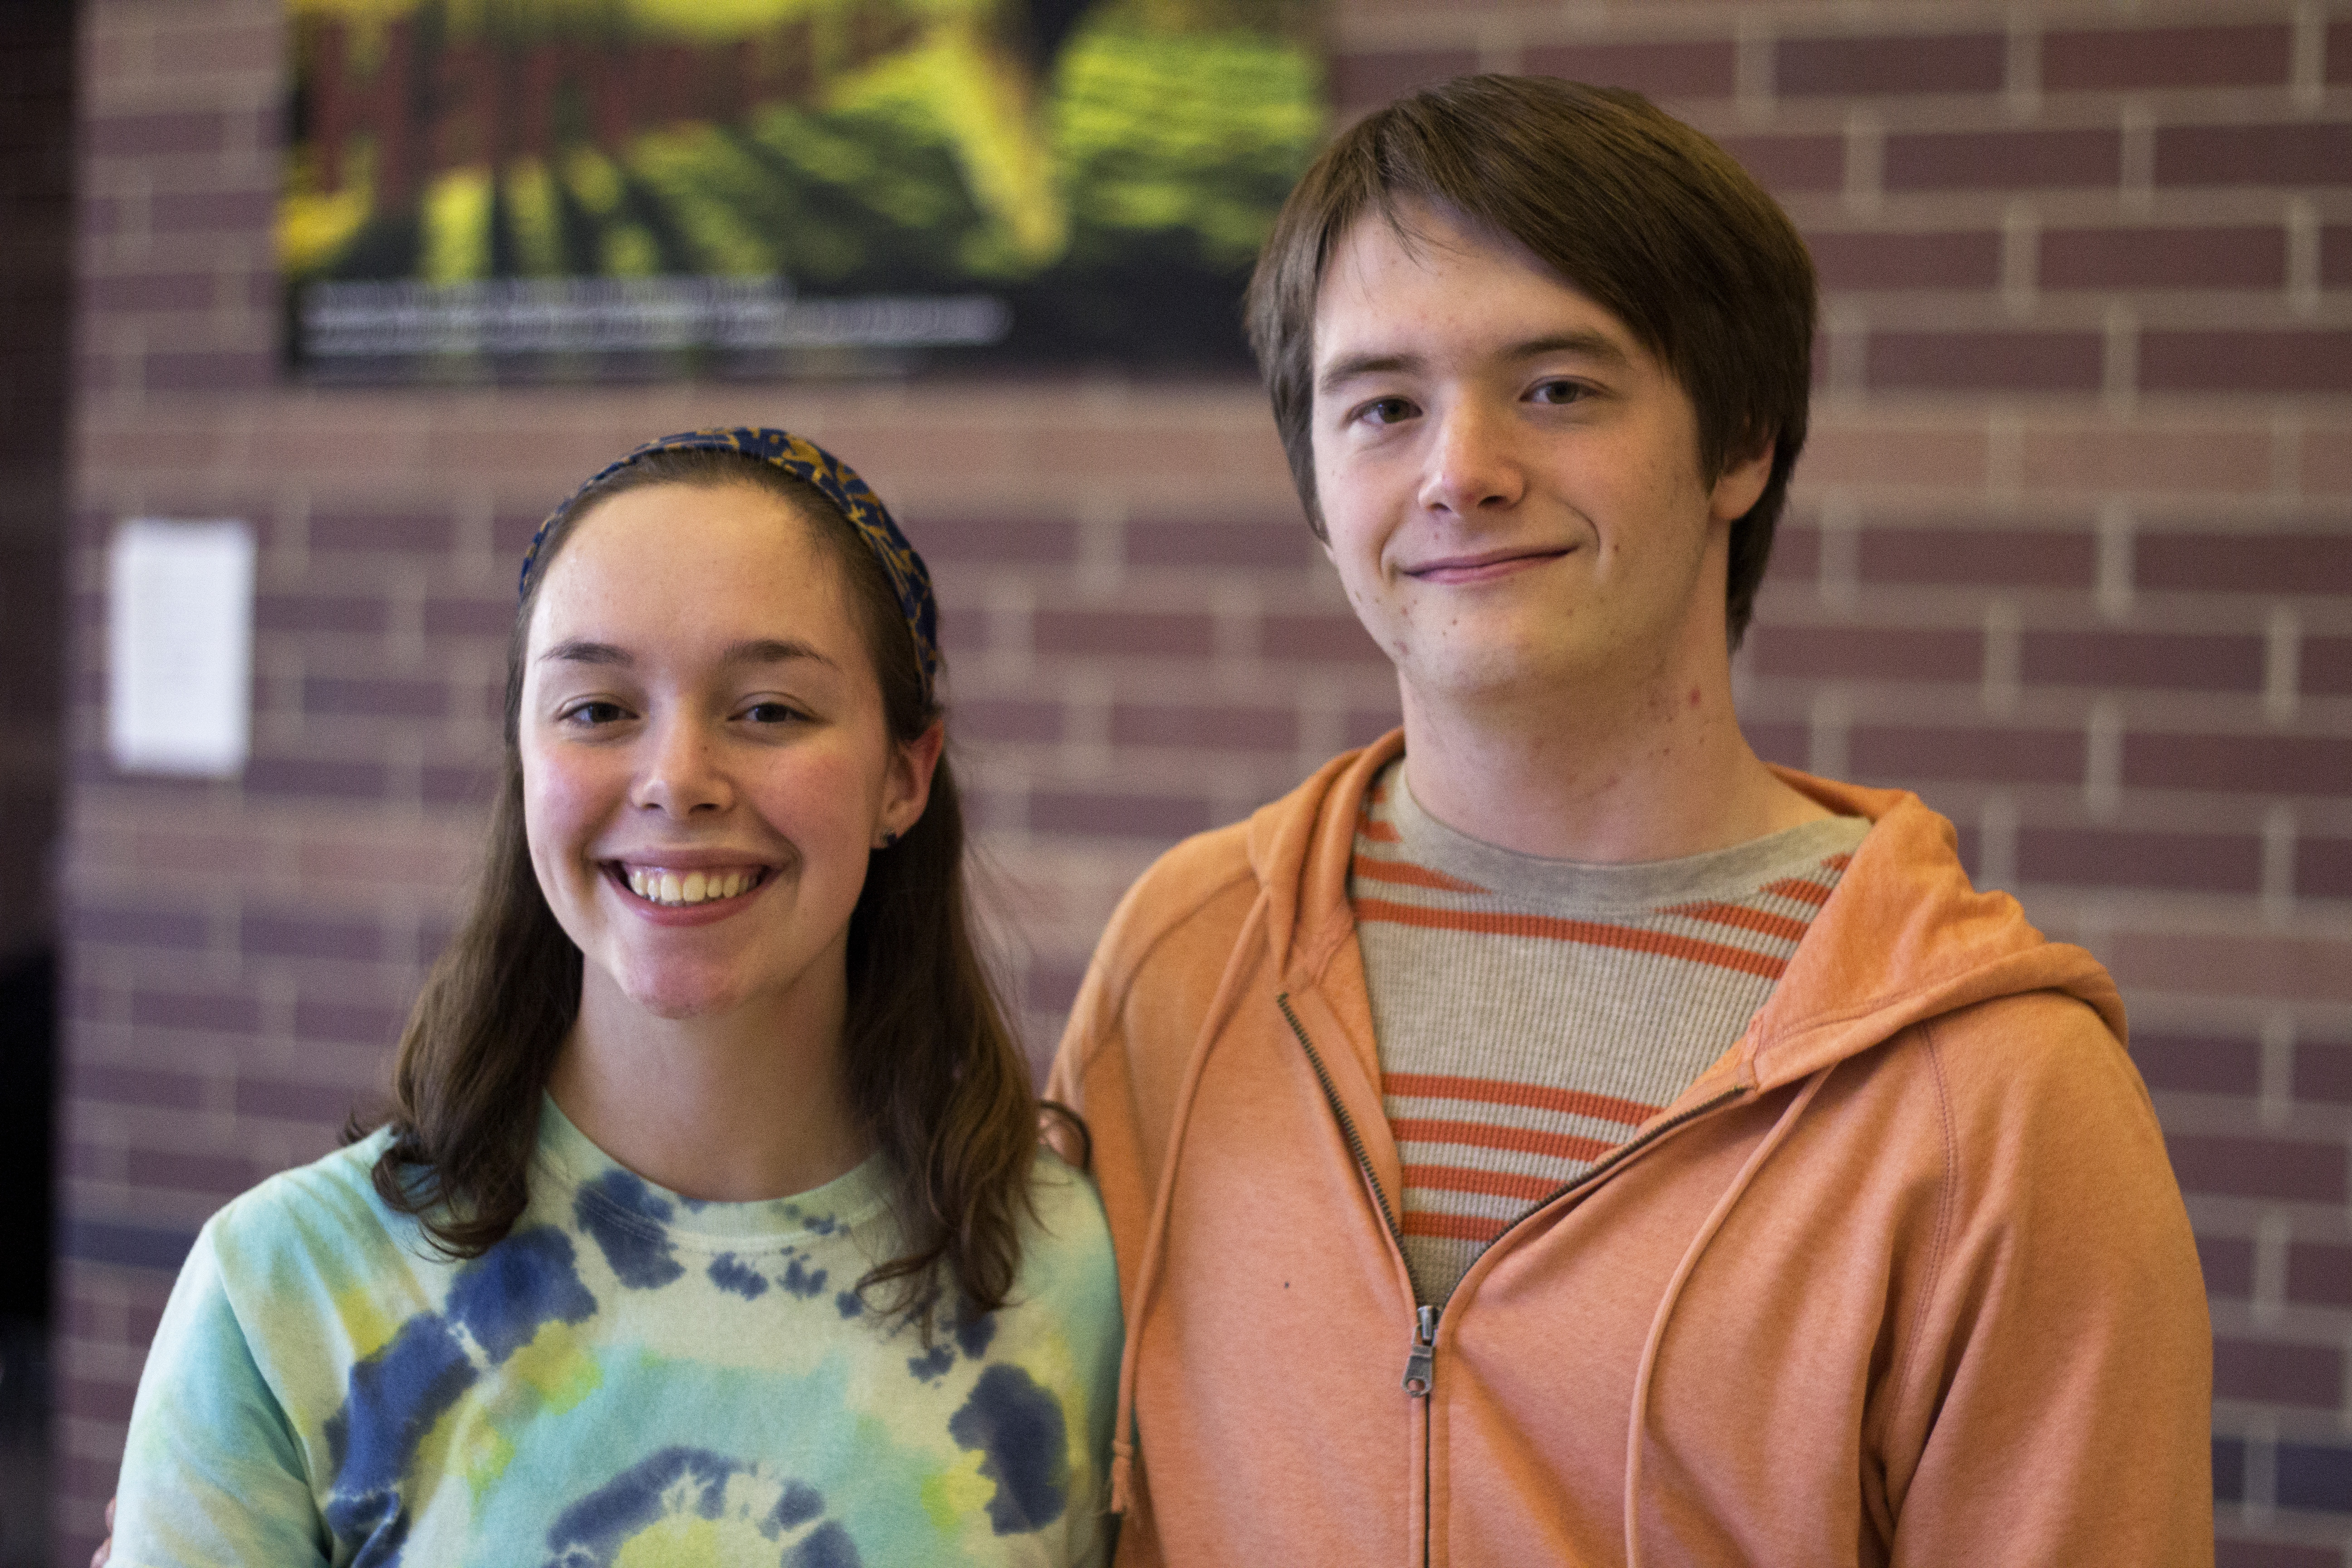 Seniors Claire and Henry McEwen. Photo by Josh Shub-Seltzer.